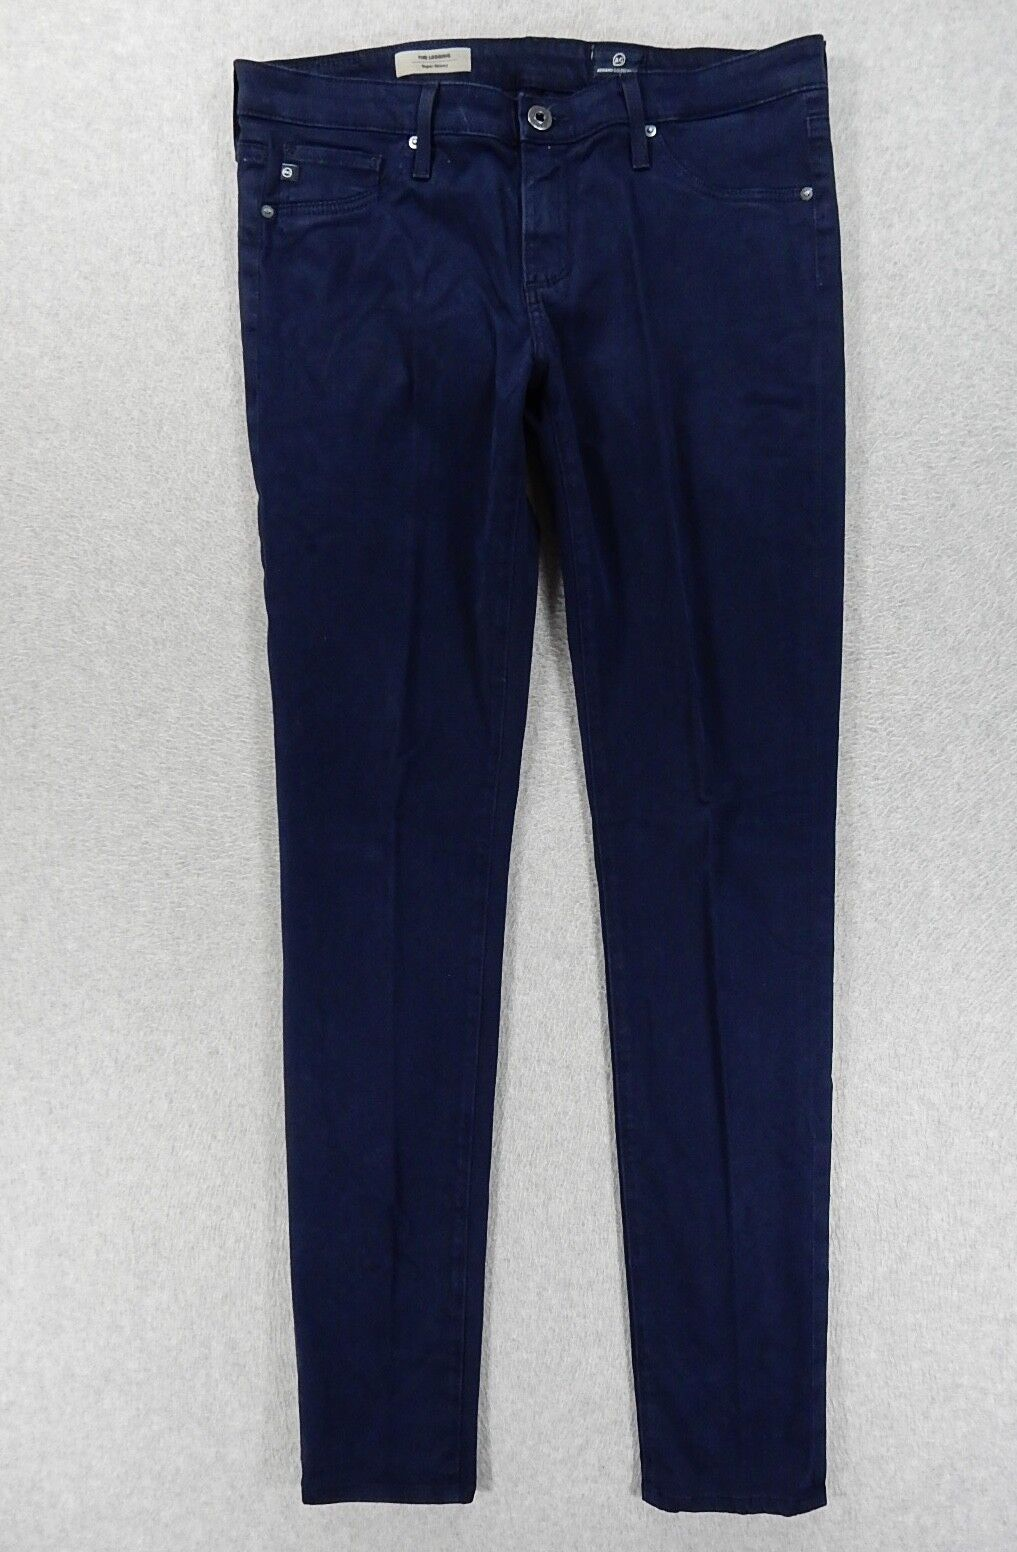 Adriano goldschmied THE LEGGING Super Skinny Jeans Pants (Womens 28R) bluee